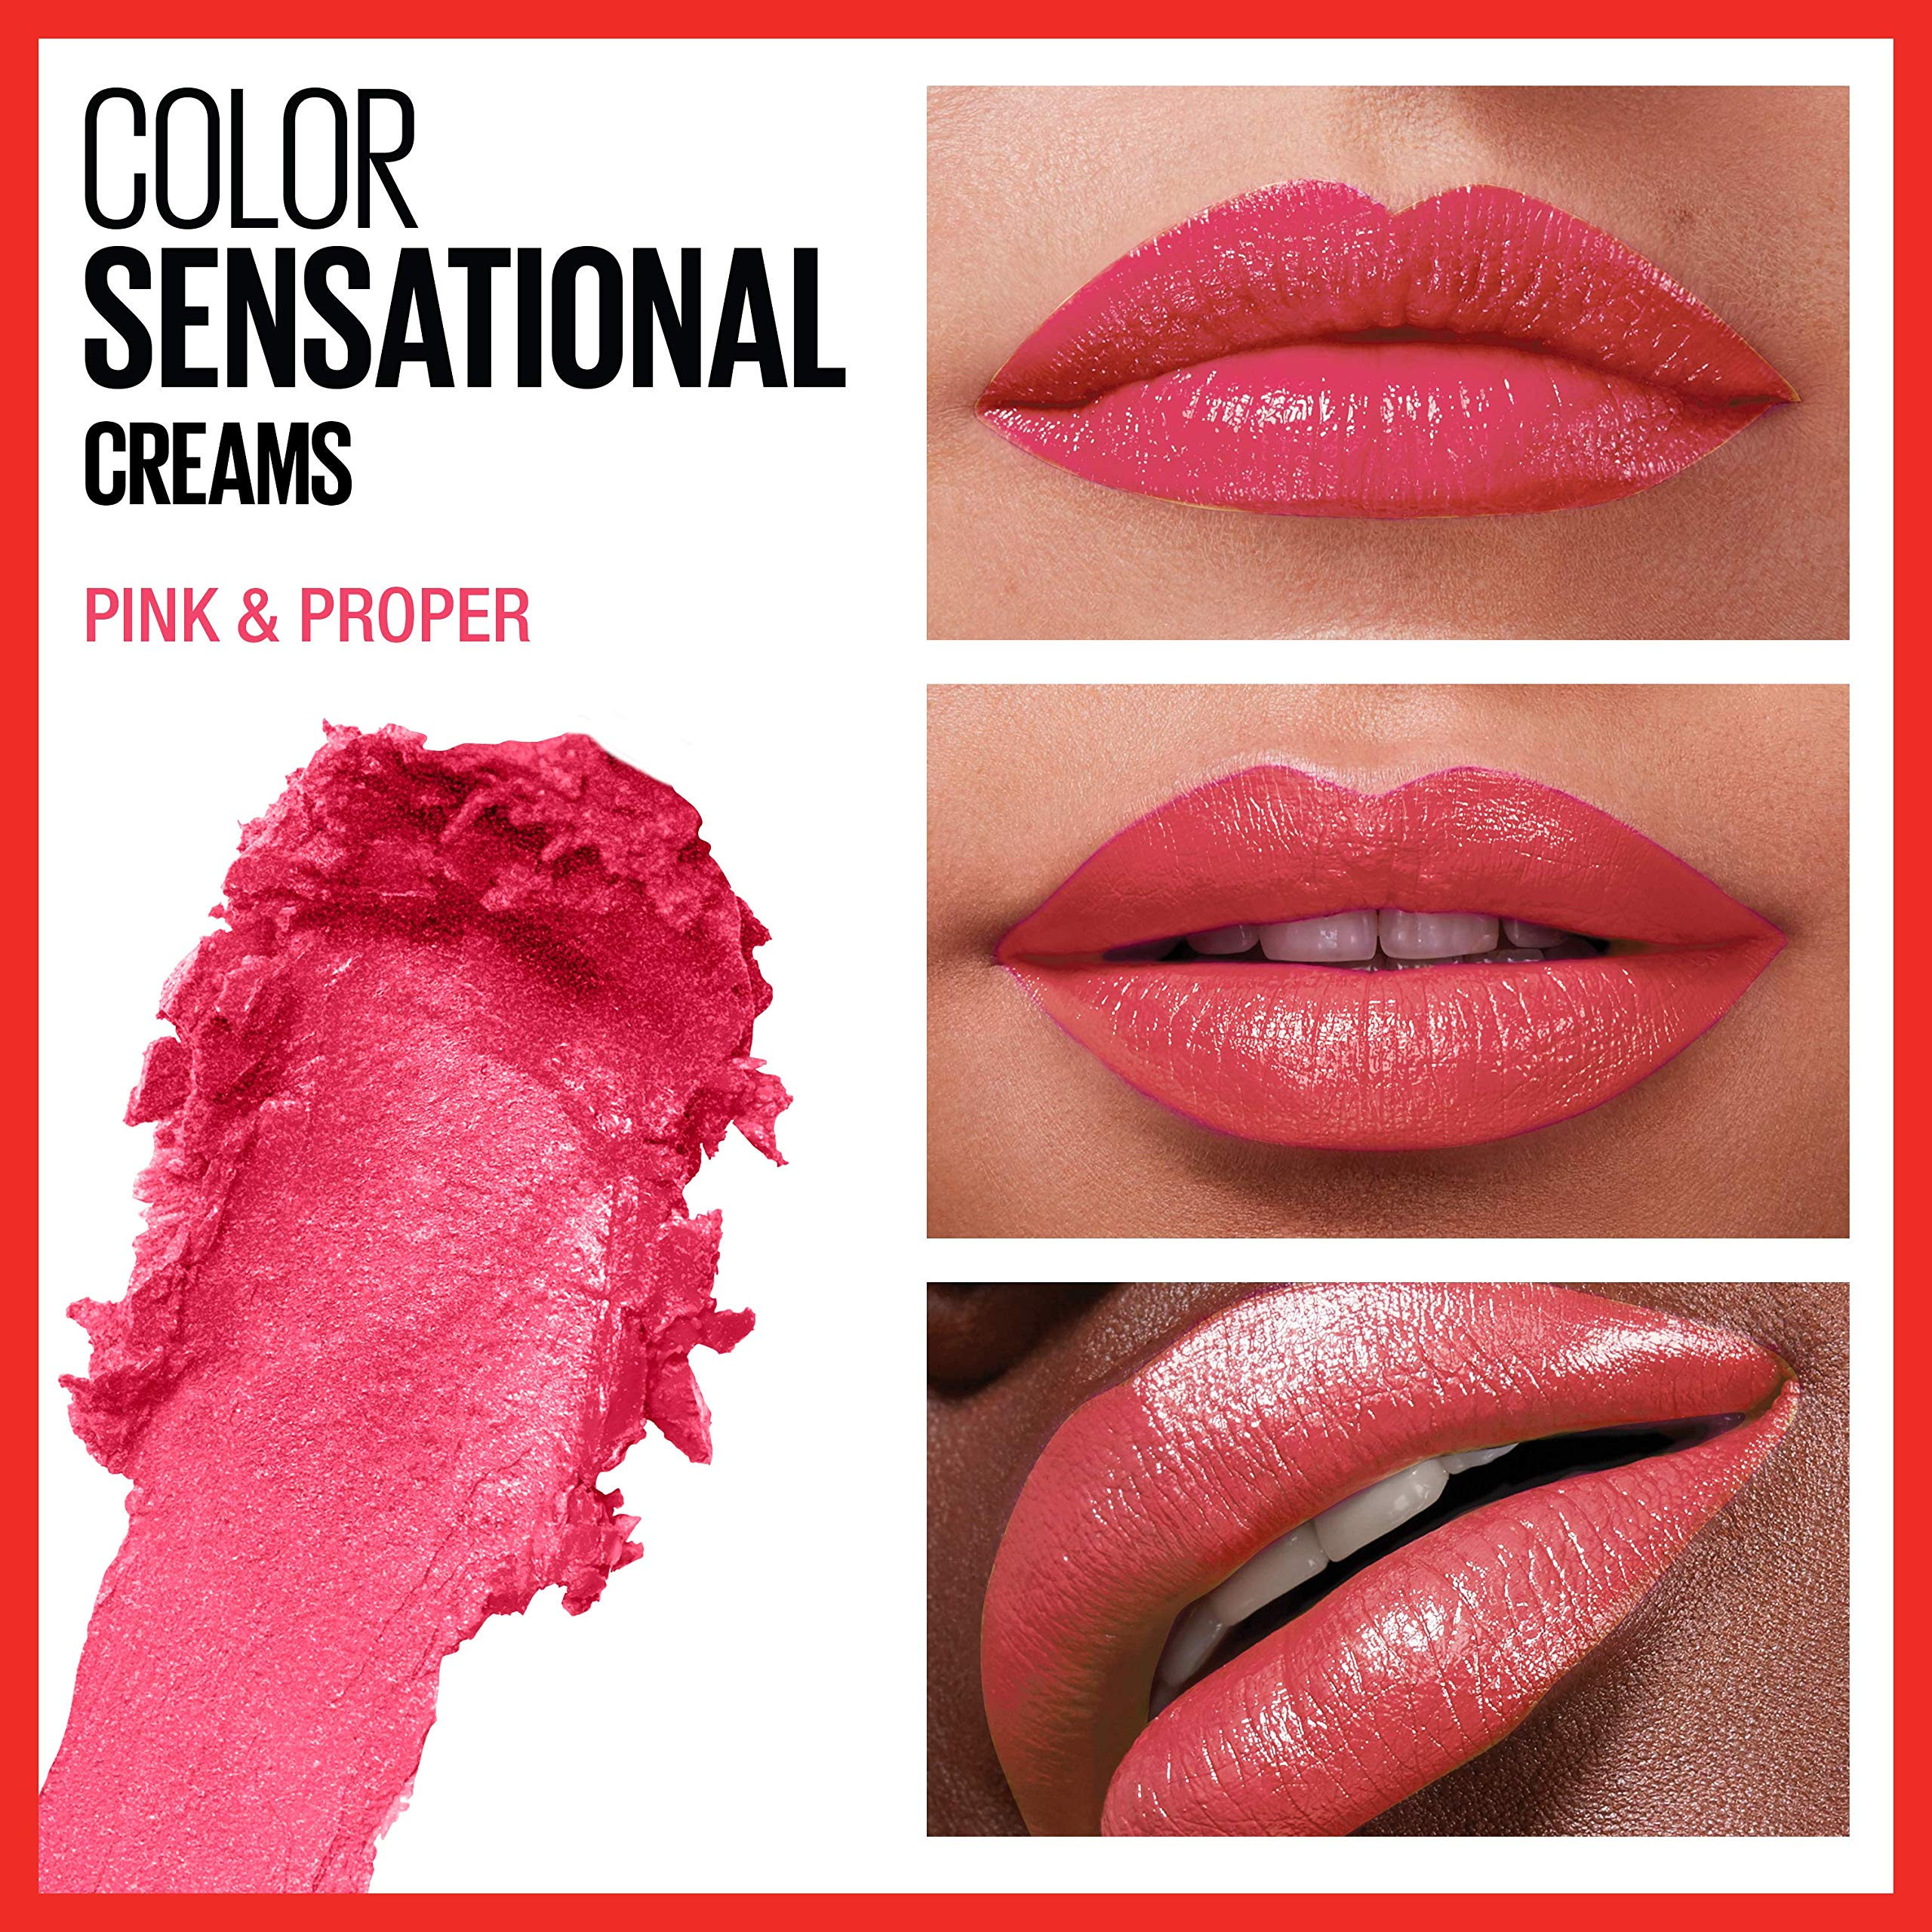 Maybelline Color Sensational Lipstick, Lip Makeup, Cream Finish, Hydrating Lipstick, Nude, Pink, Red, Plum Lip Color, Pink and Proper, 0.15 oz; (Packaging May Vary)